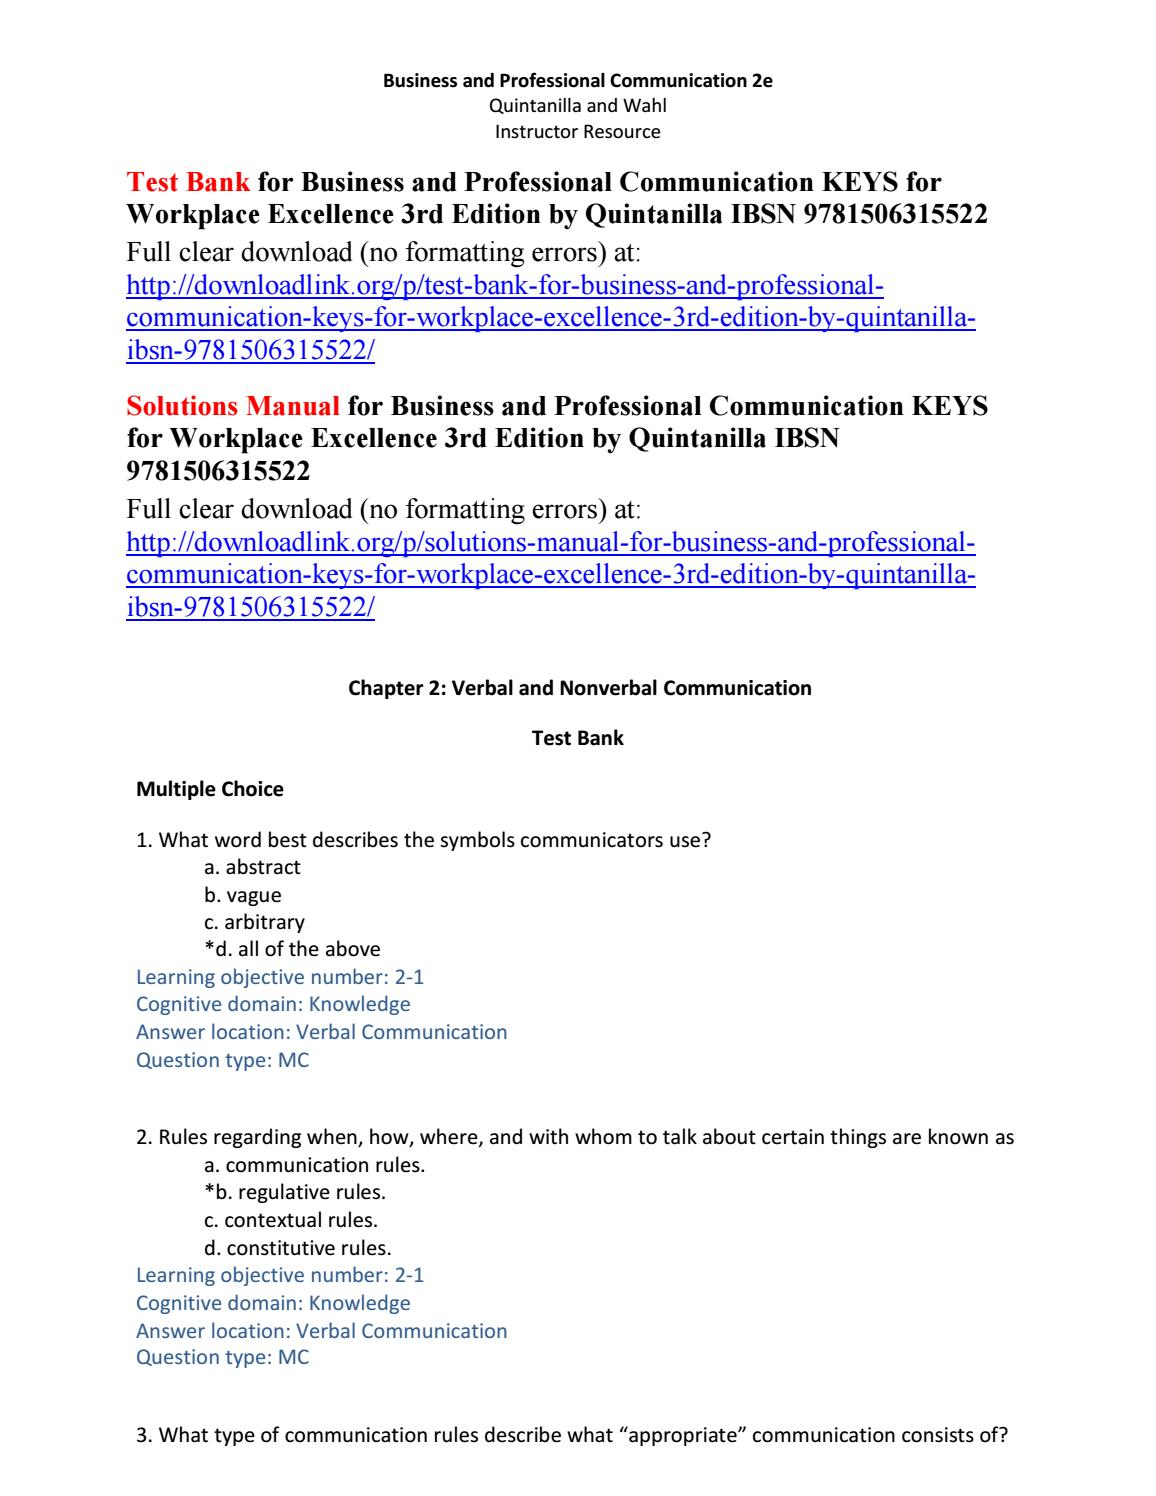 Test Bank for Business and Professional Communication KEYS for Workplace  Excellence 3rd Edition by Q by Gardner451 - issuu